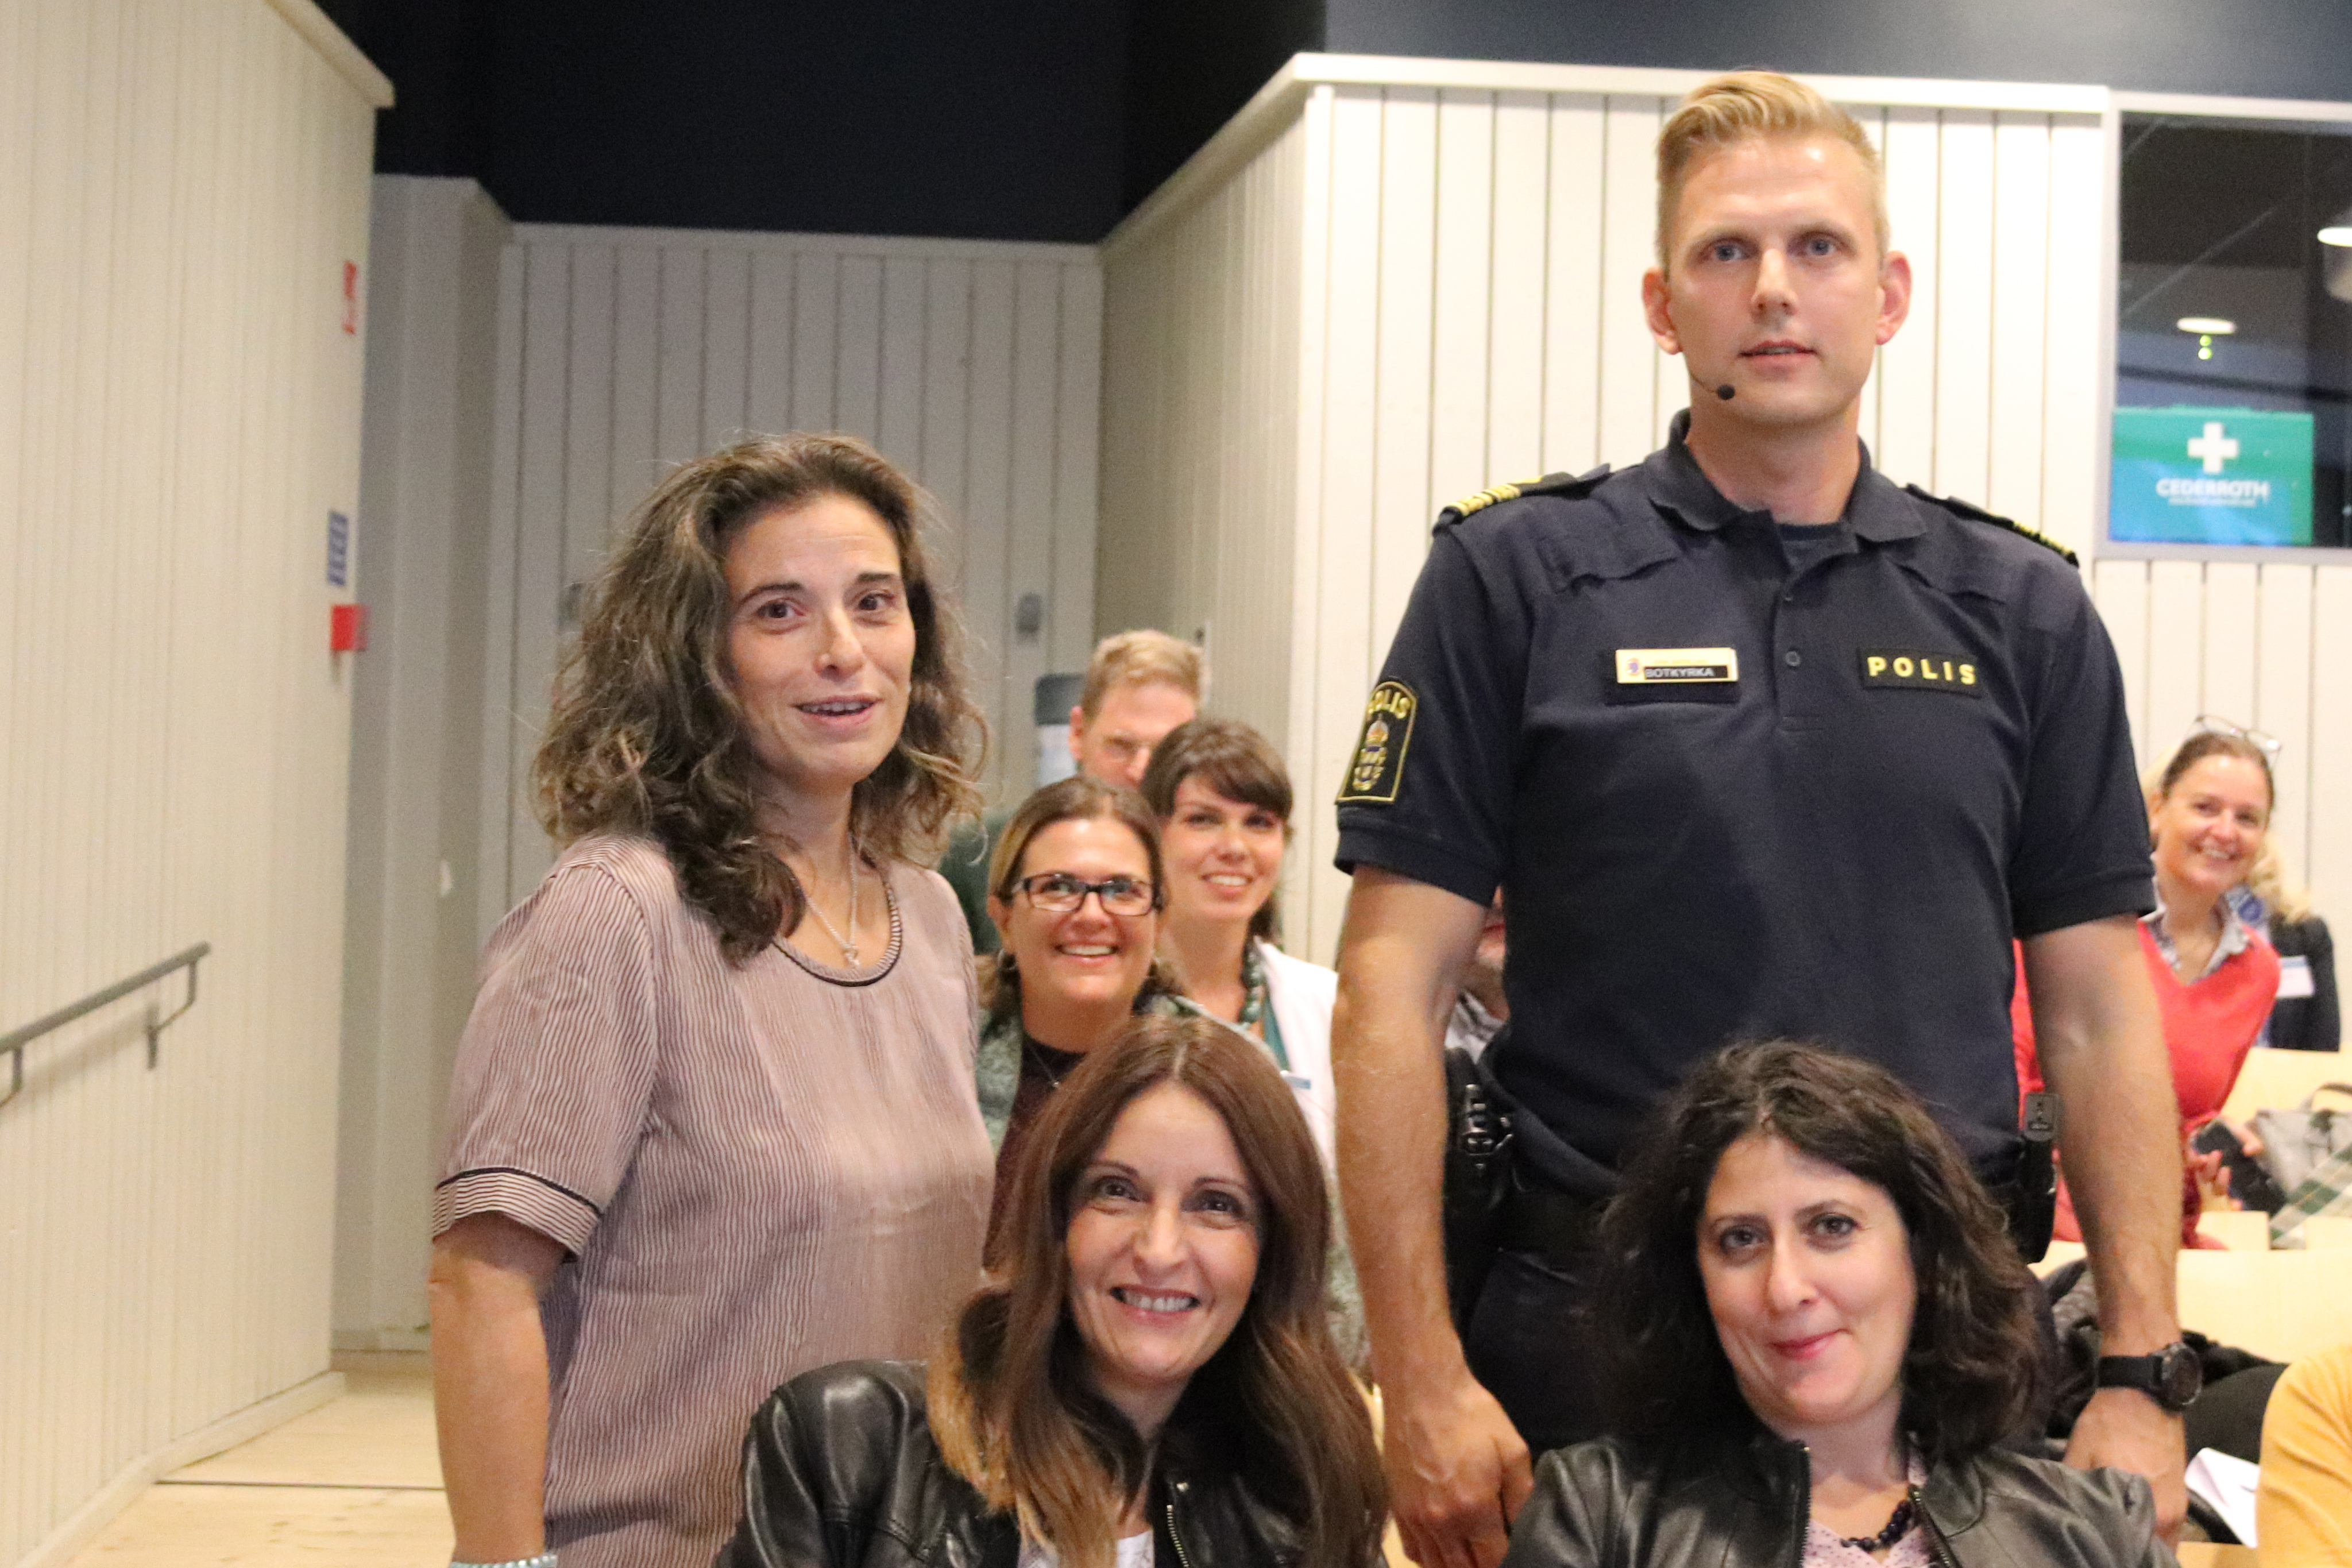 The European seminar participants made a study visit to Botkyrka, a municipality that has succeeded in establishing permanent violence prevention work in compulsory schools and upper secondary schools with social services and the police.